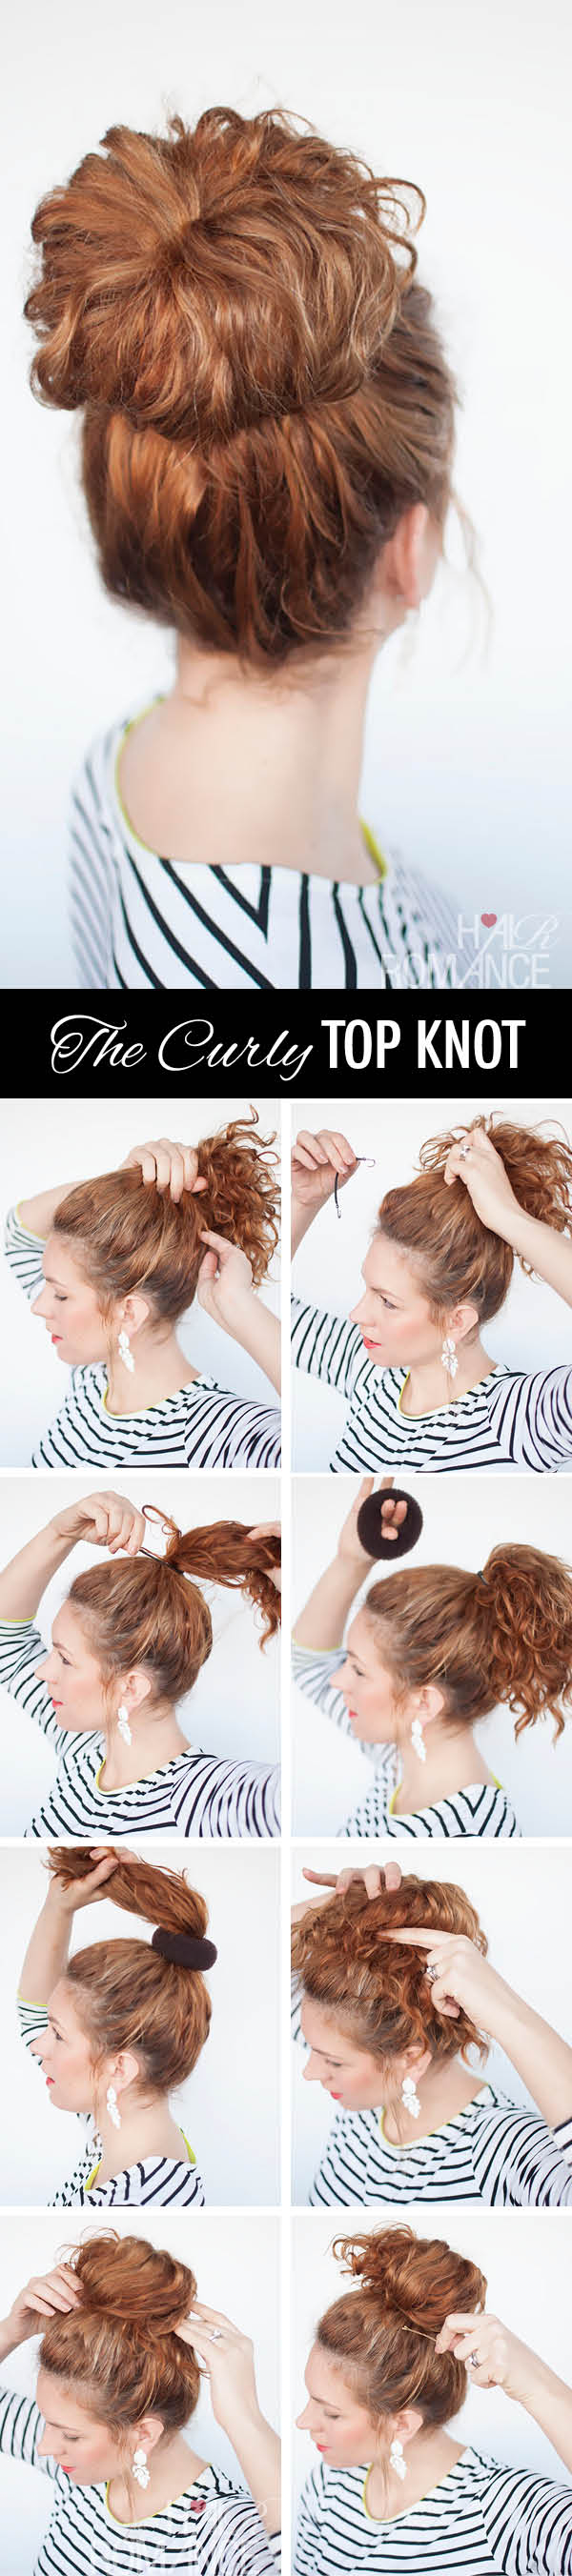 hairstyle tutorial for curly hair